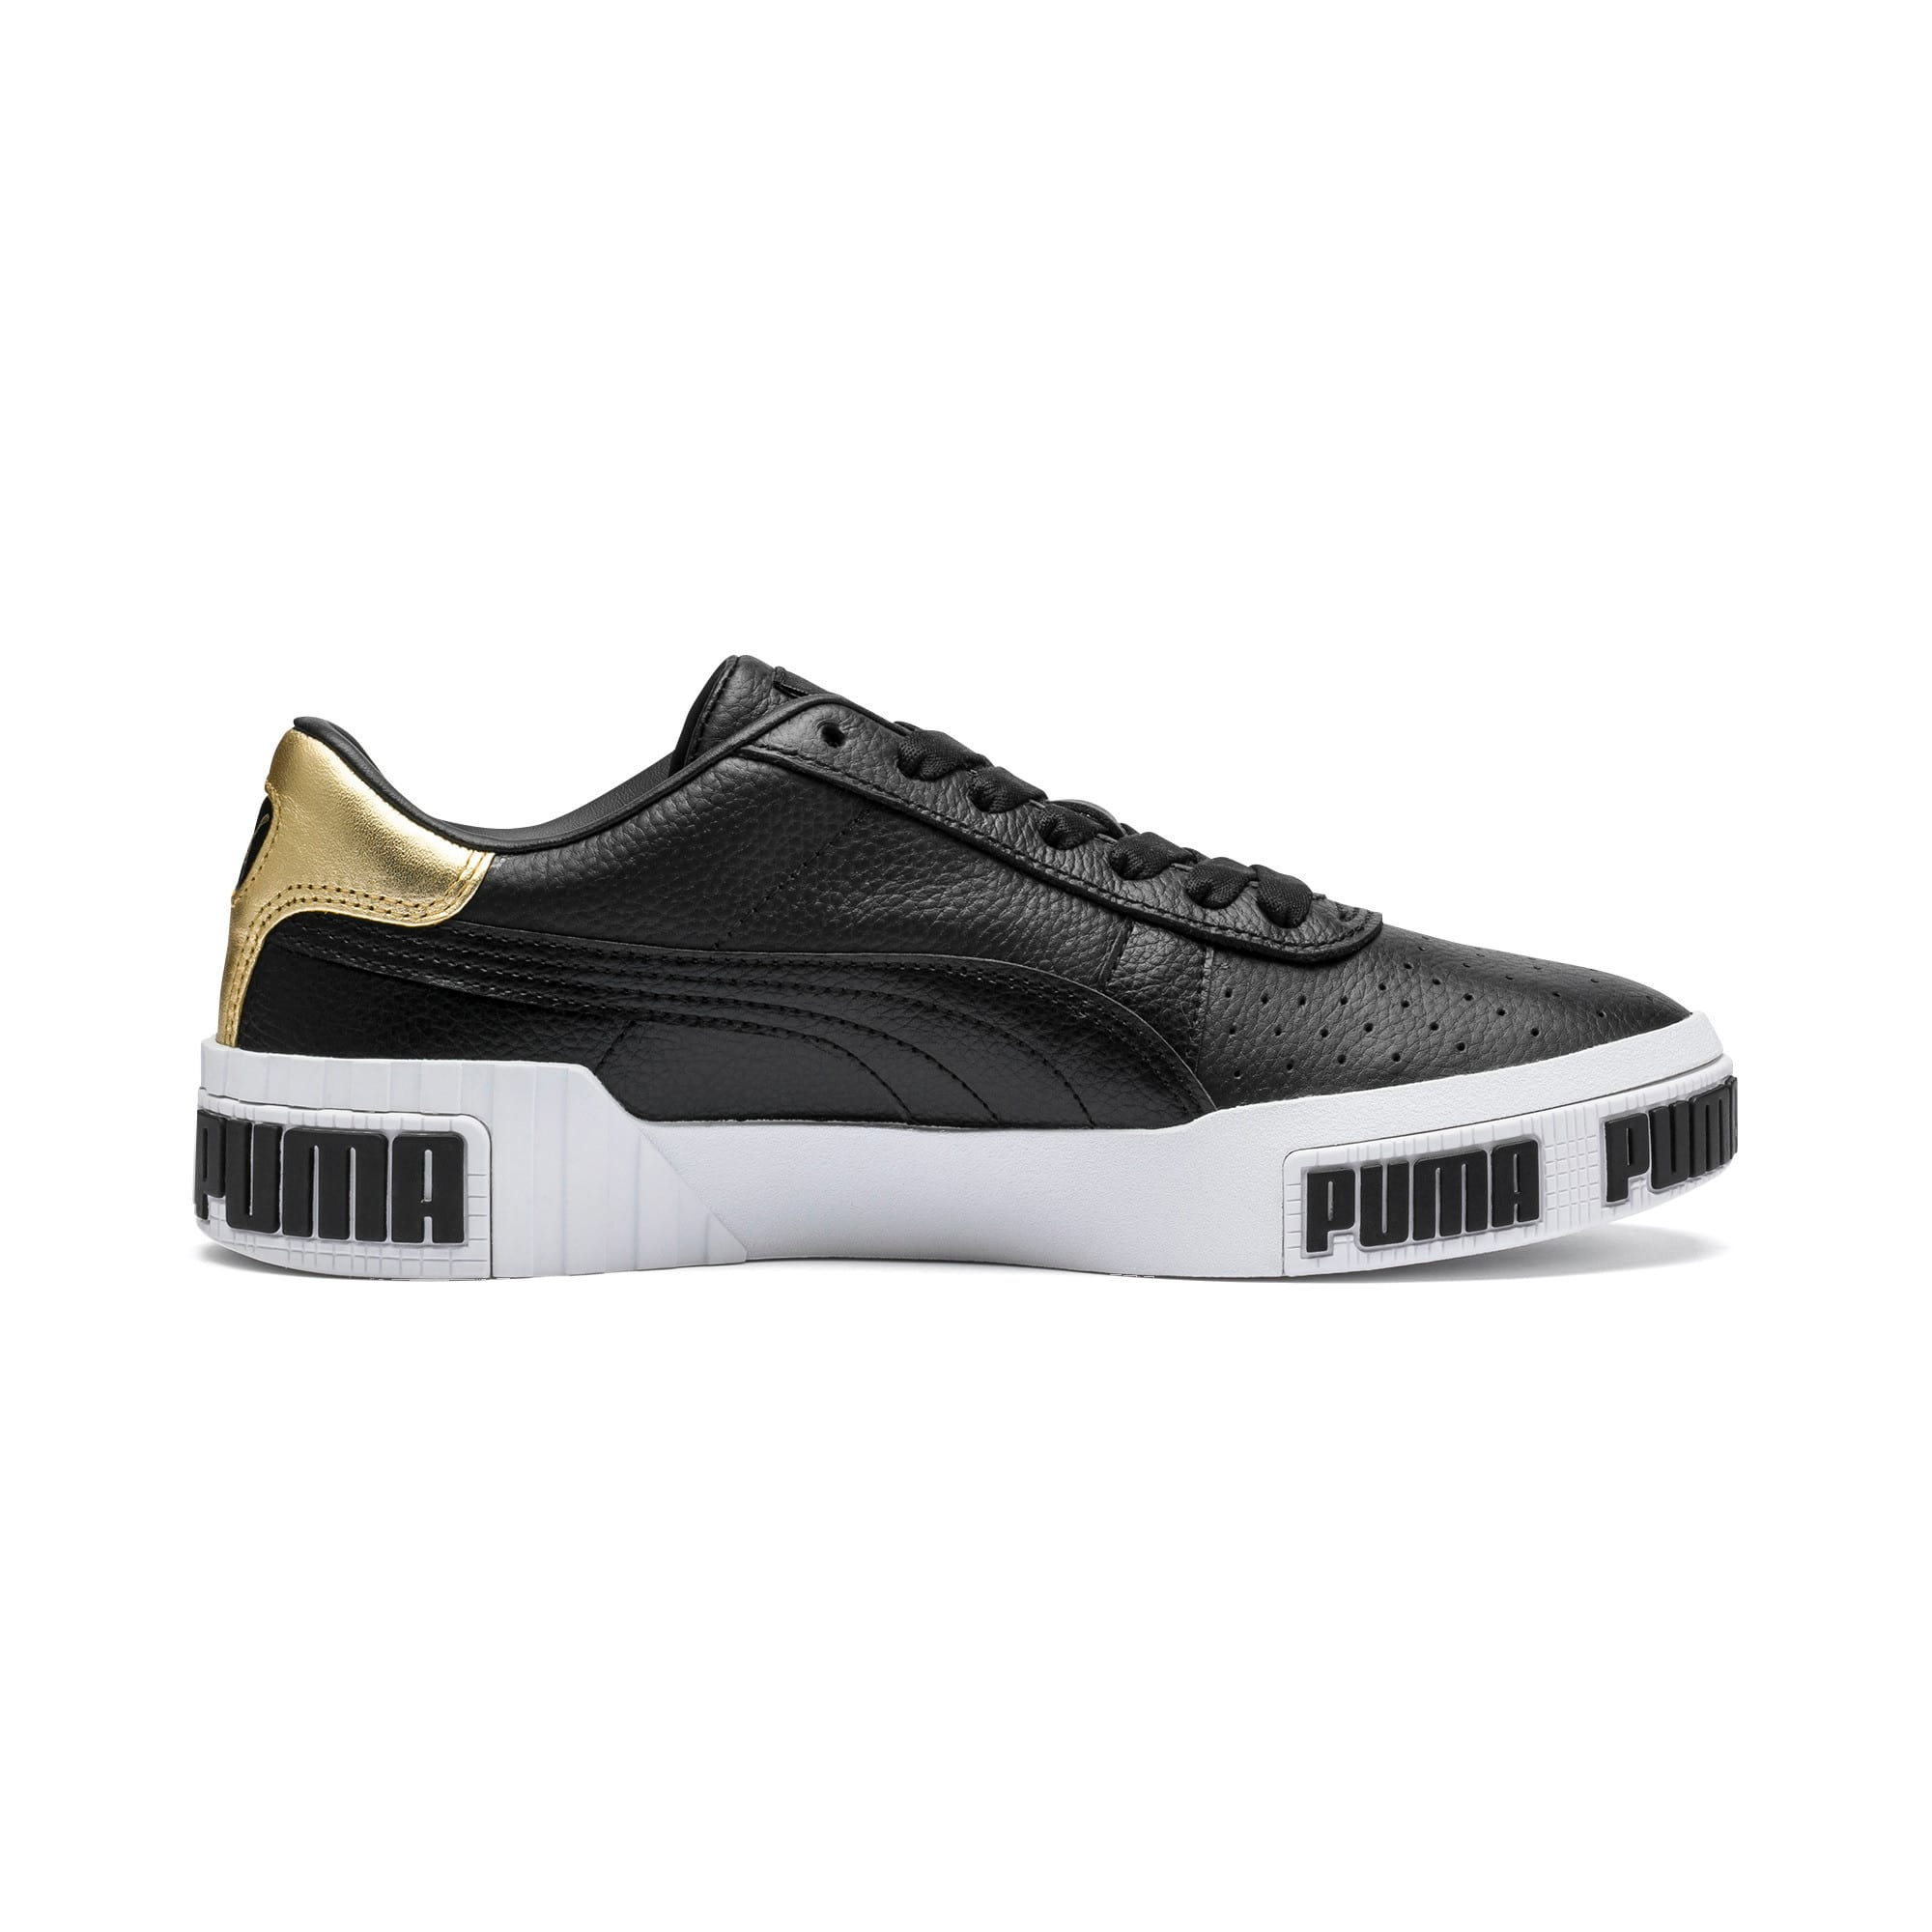 Thumbnail 5 of Cali Bold Metallic sportschoenen voor dames, Puma Black-Gold, medium